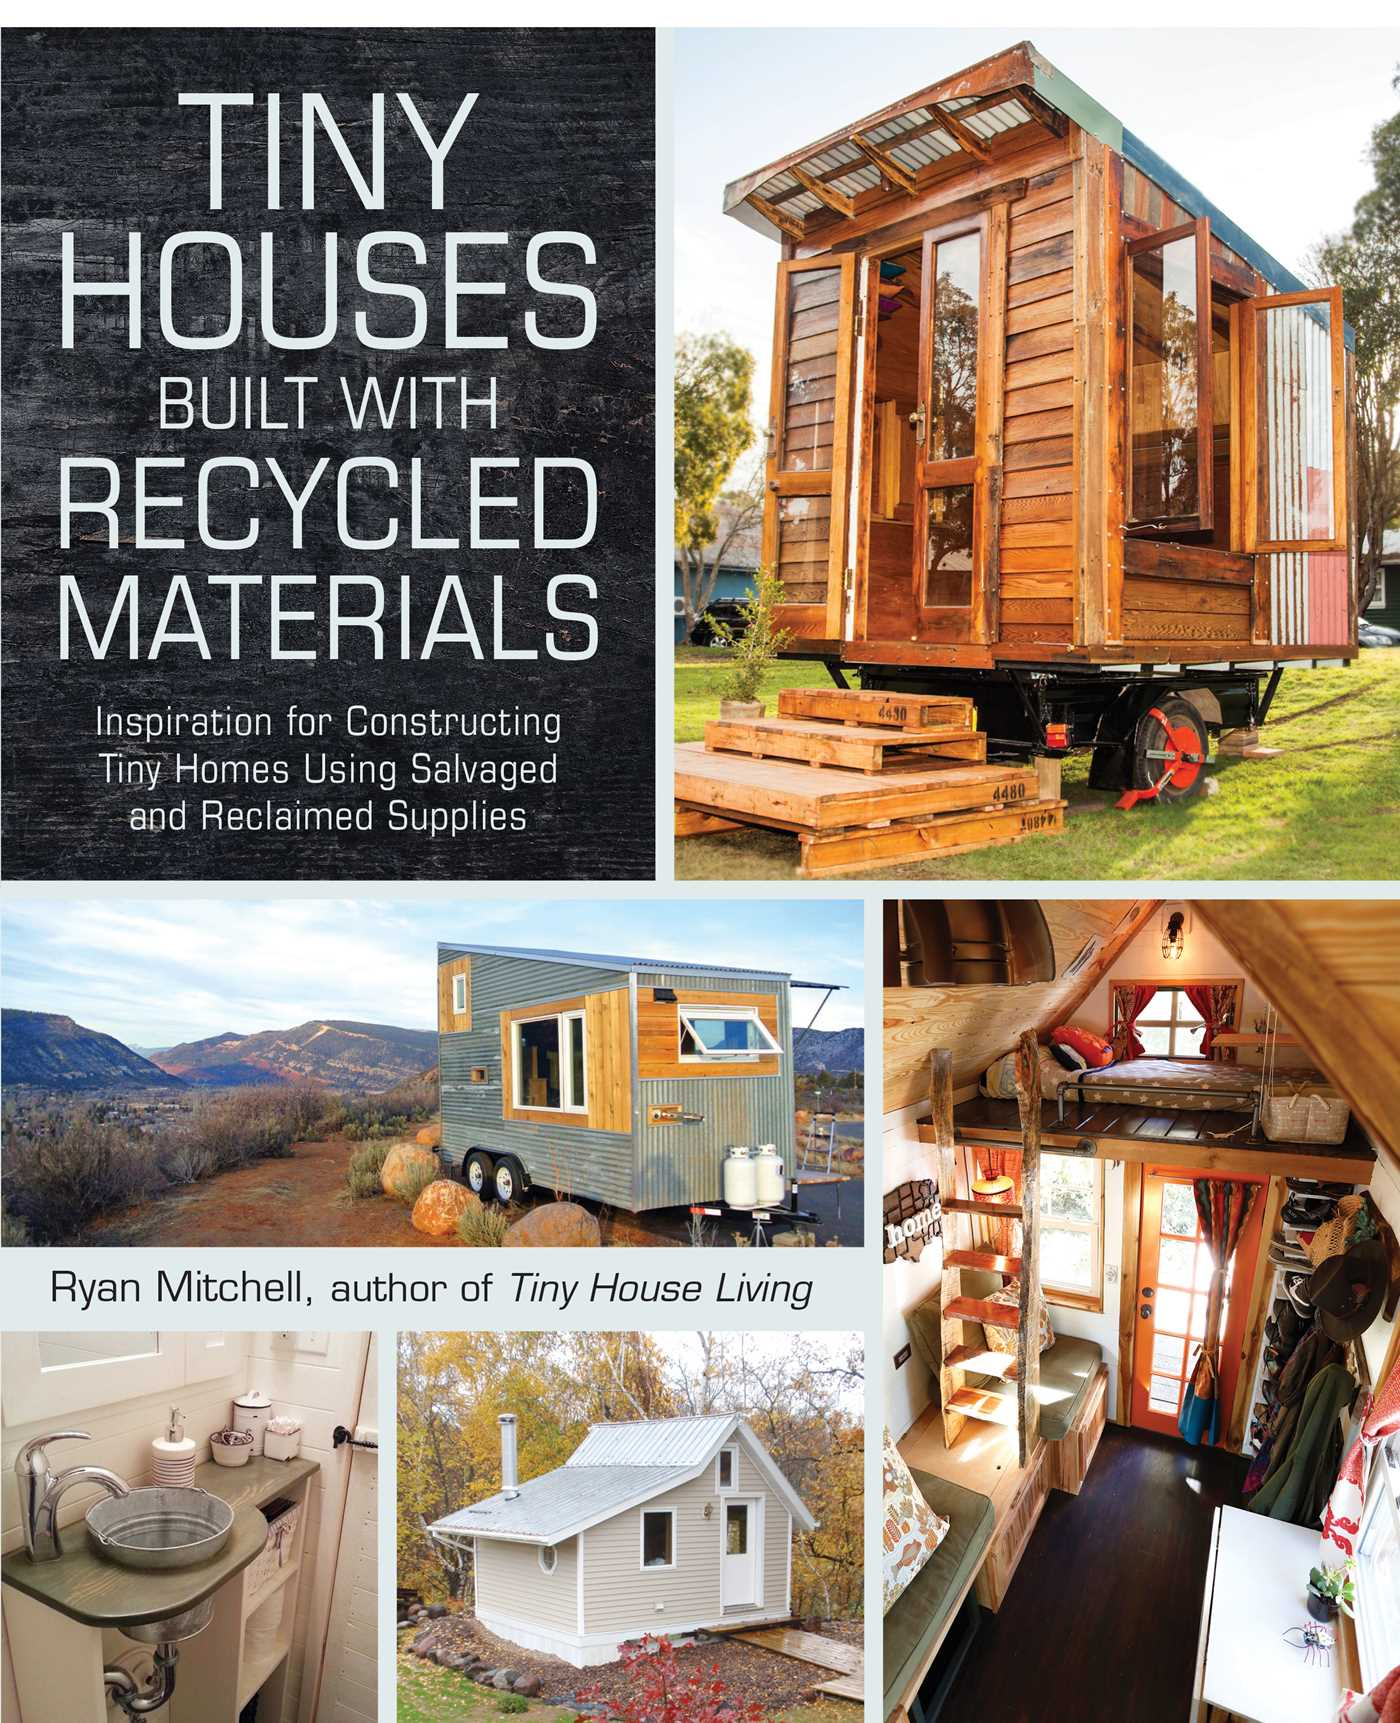 Houses Built With Recycled Materials : Tiny houses built with recycled materials book by ryan